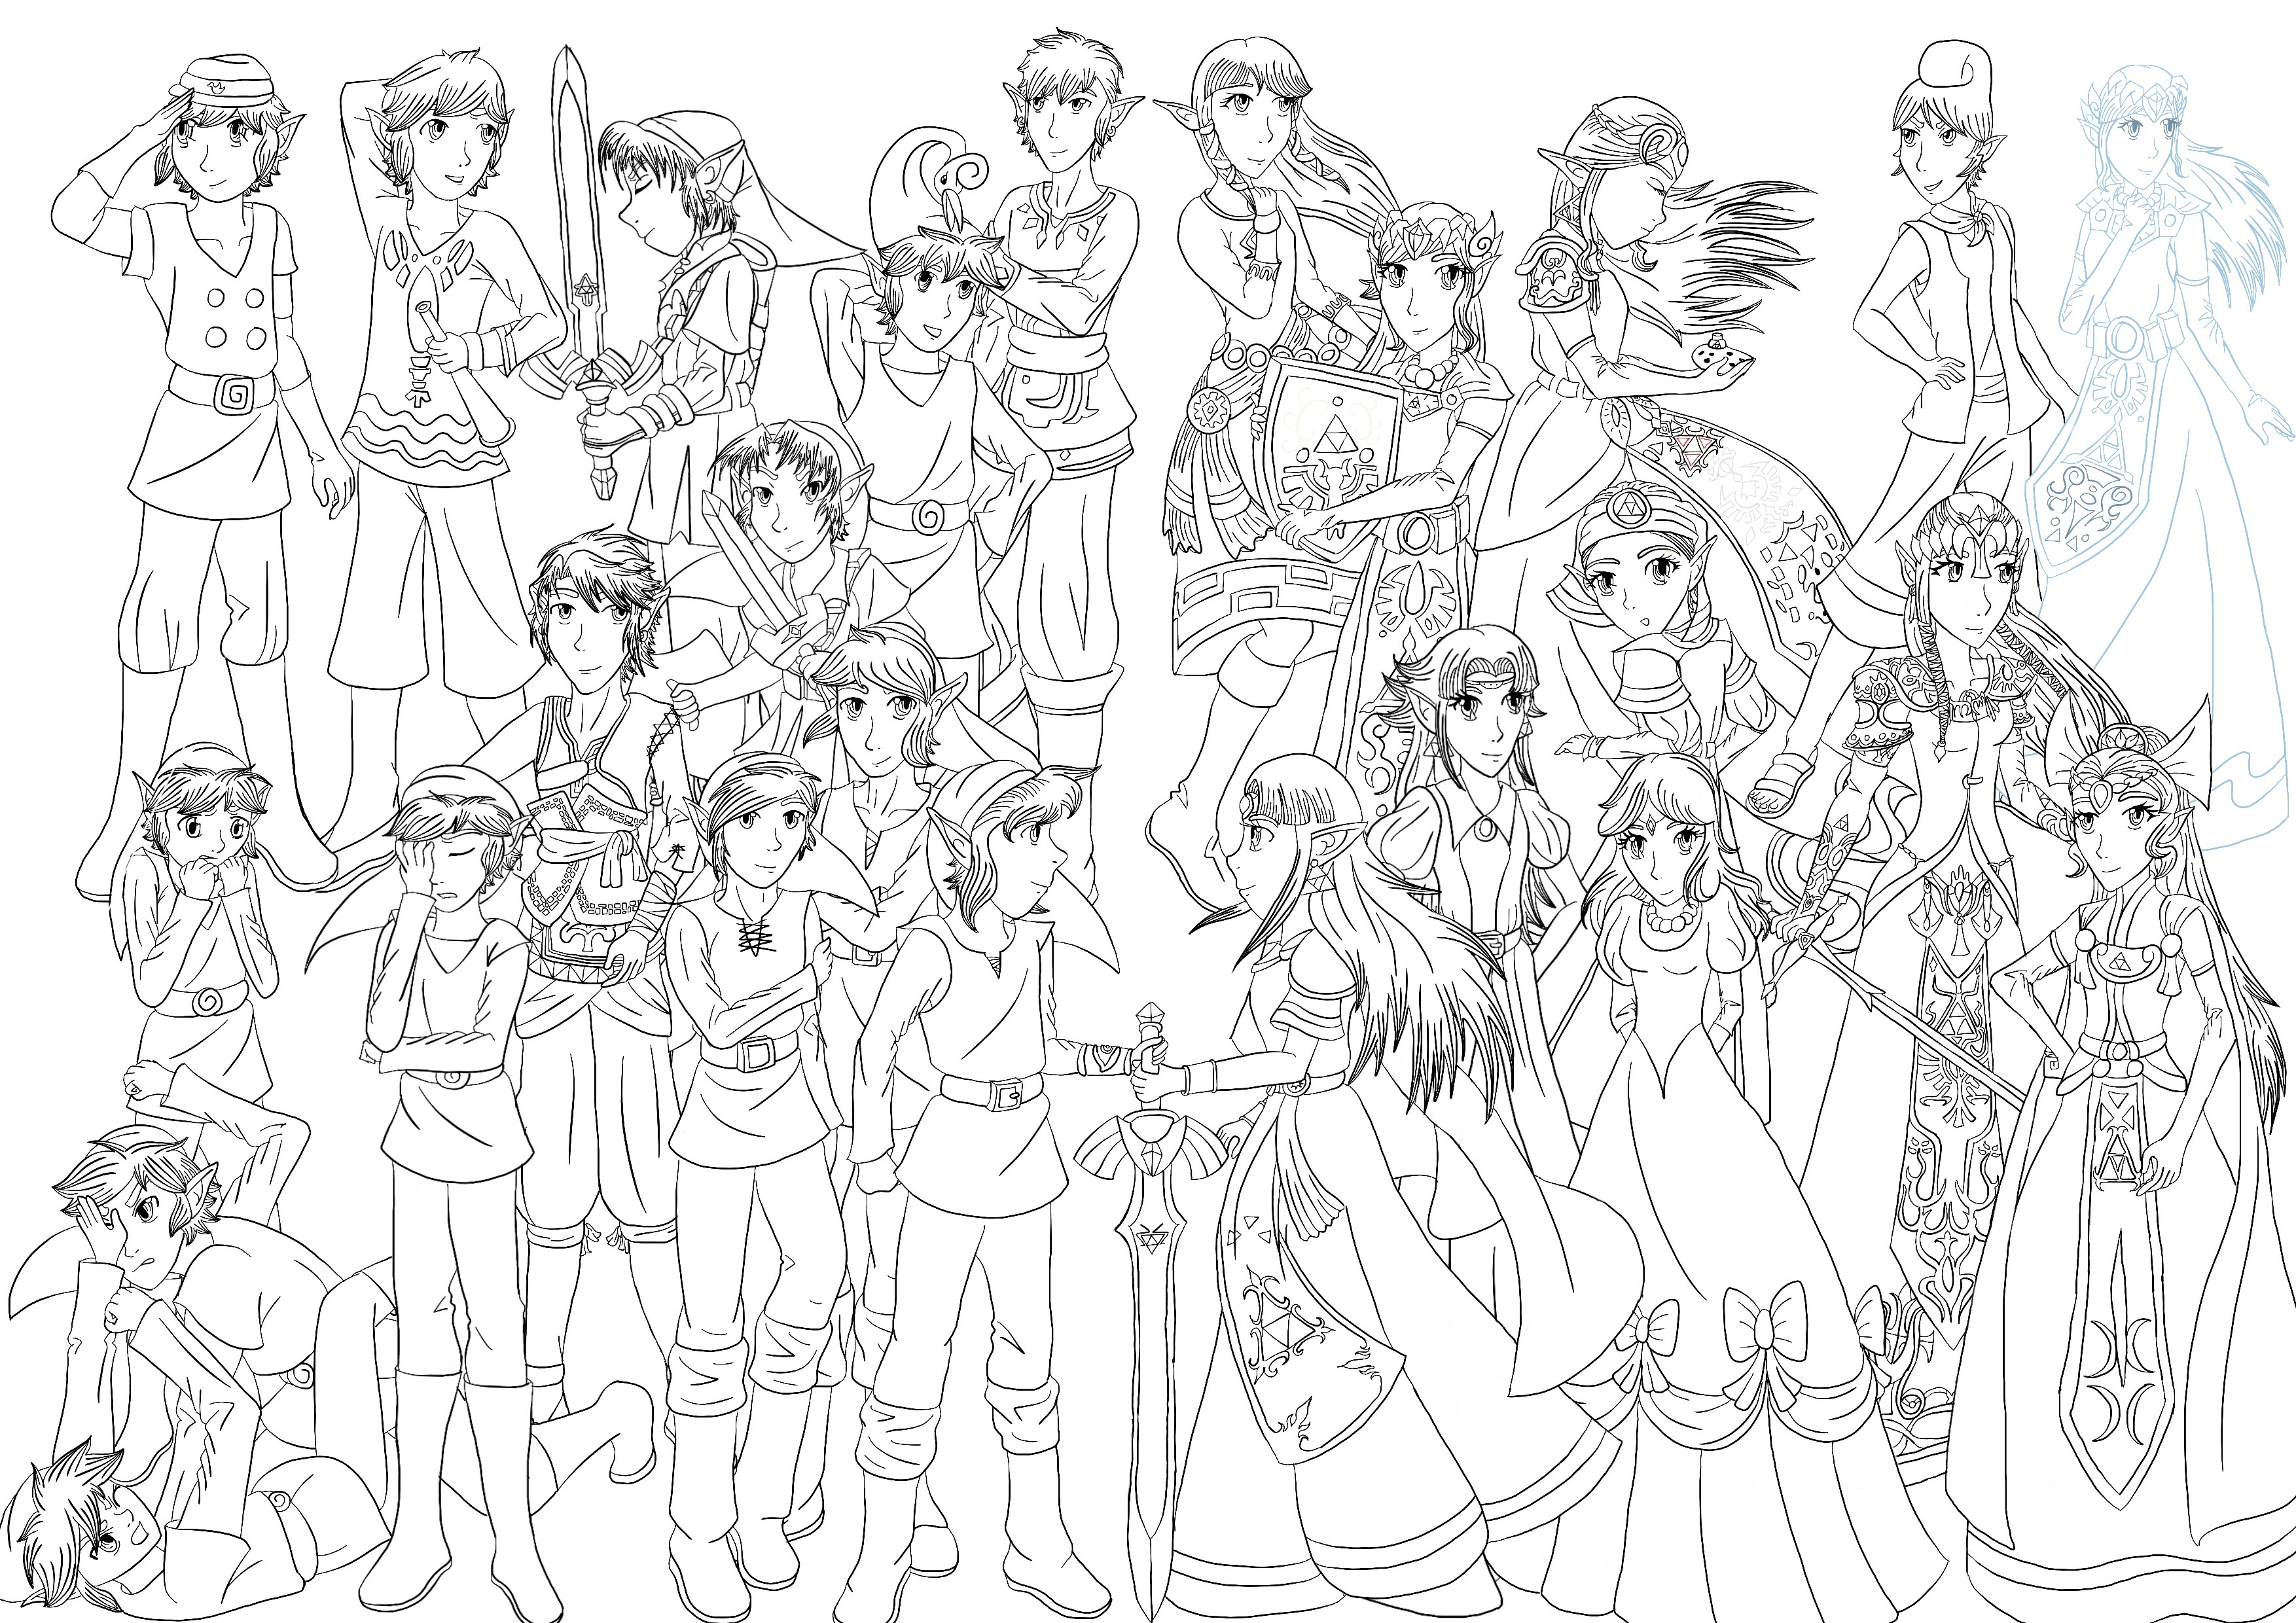 Line Art Zelda : Legend of zelda tribute line art by cessierose on deviantart